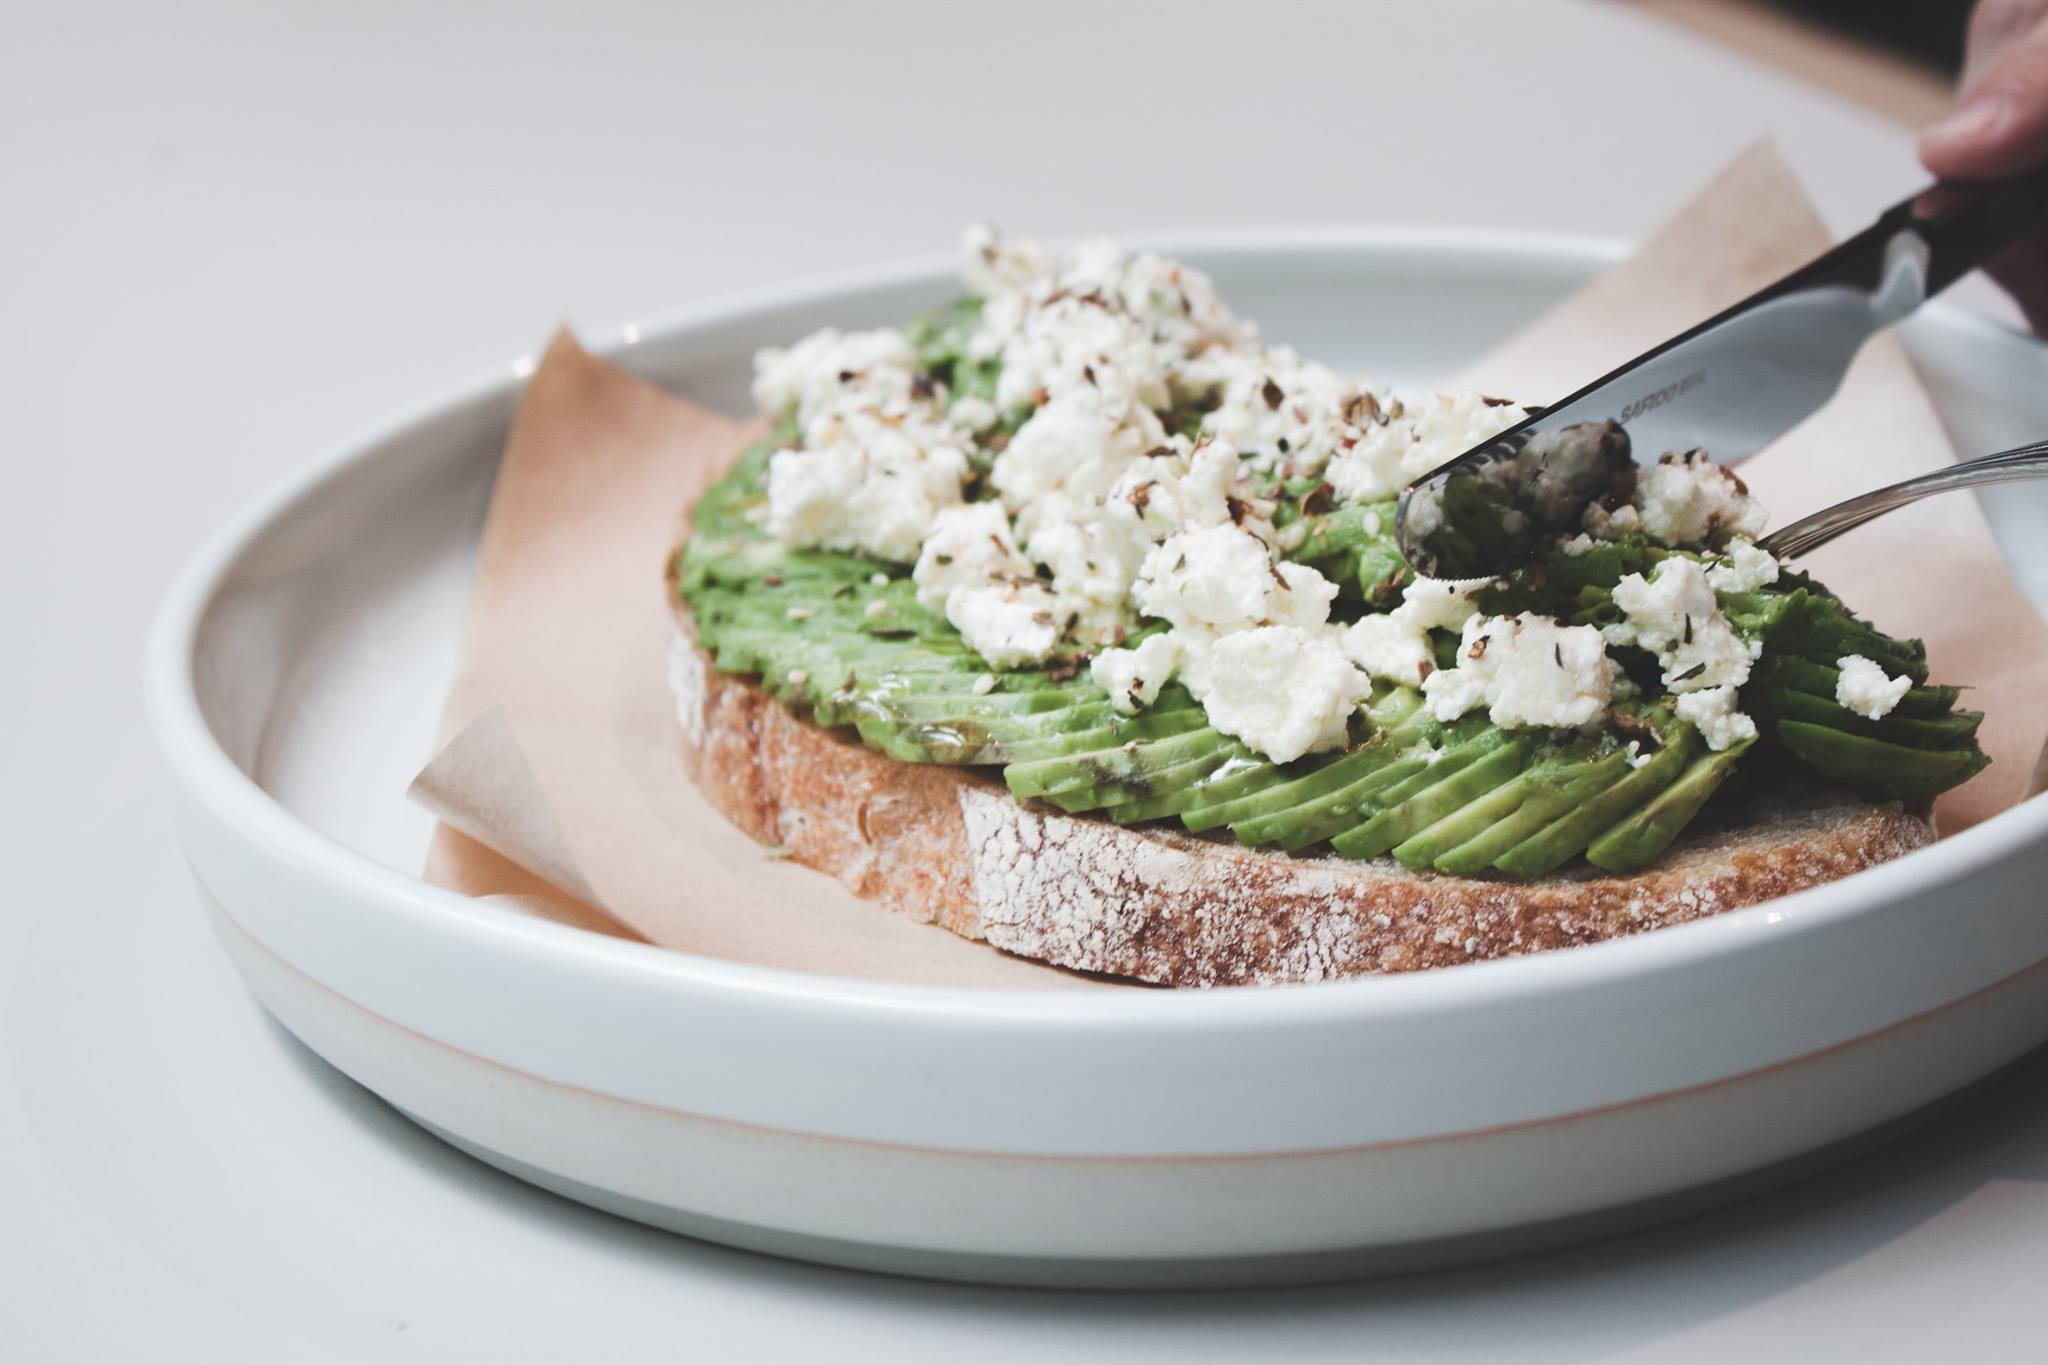 Avocado toast lovers, this one's for you